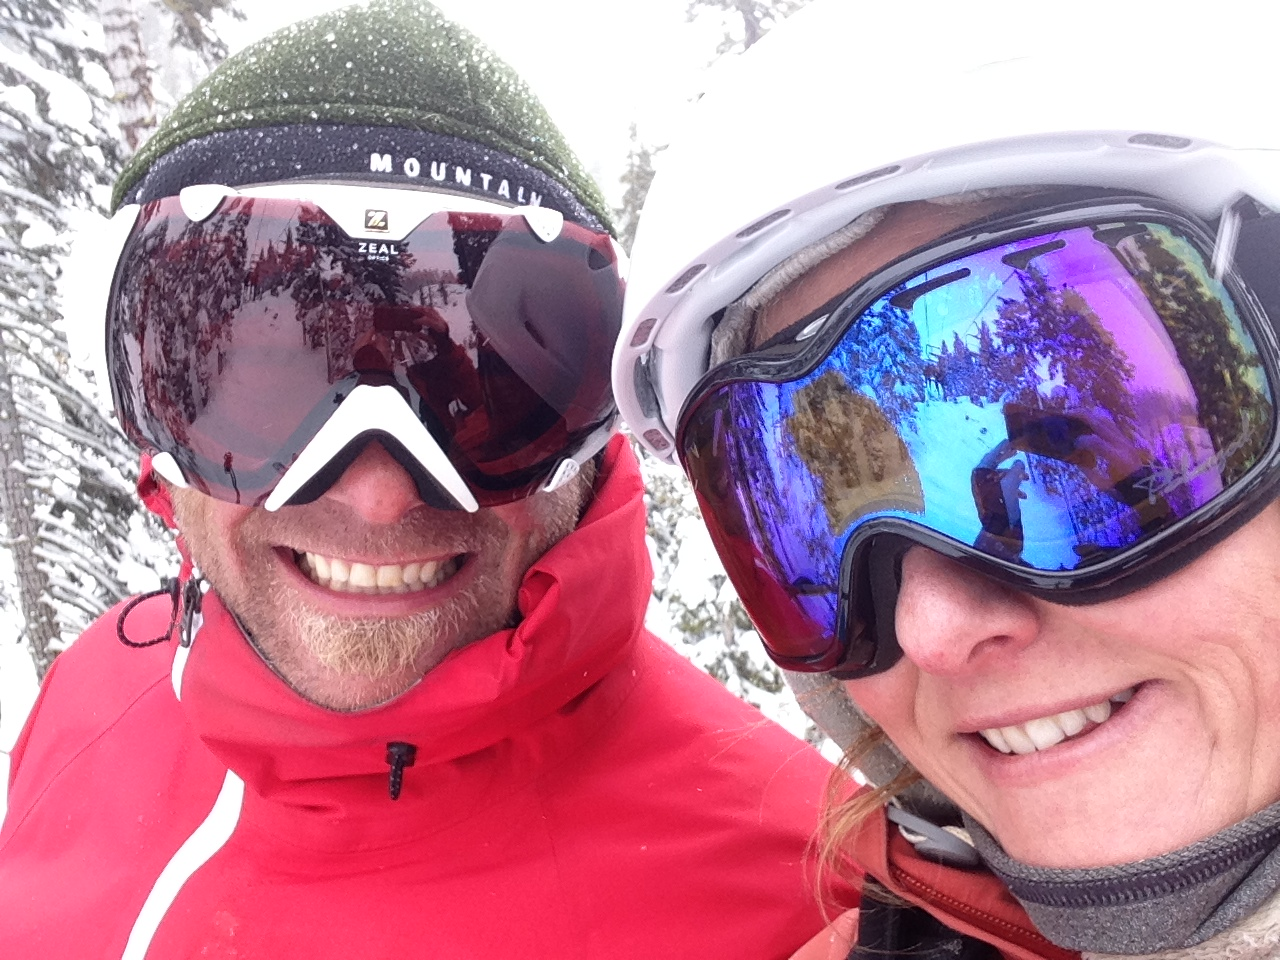 A perfect day on the hill chatting about our love of skiing on the chair on a powder day!